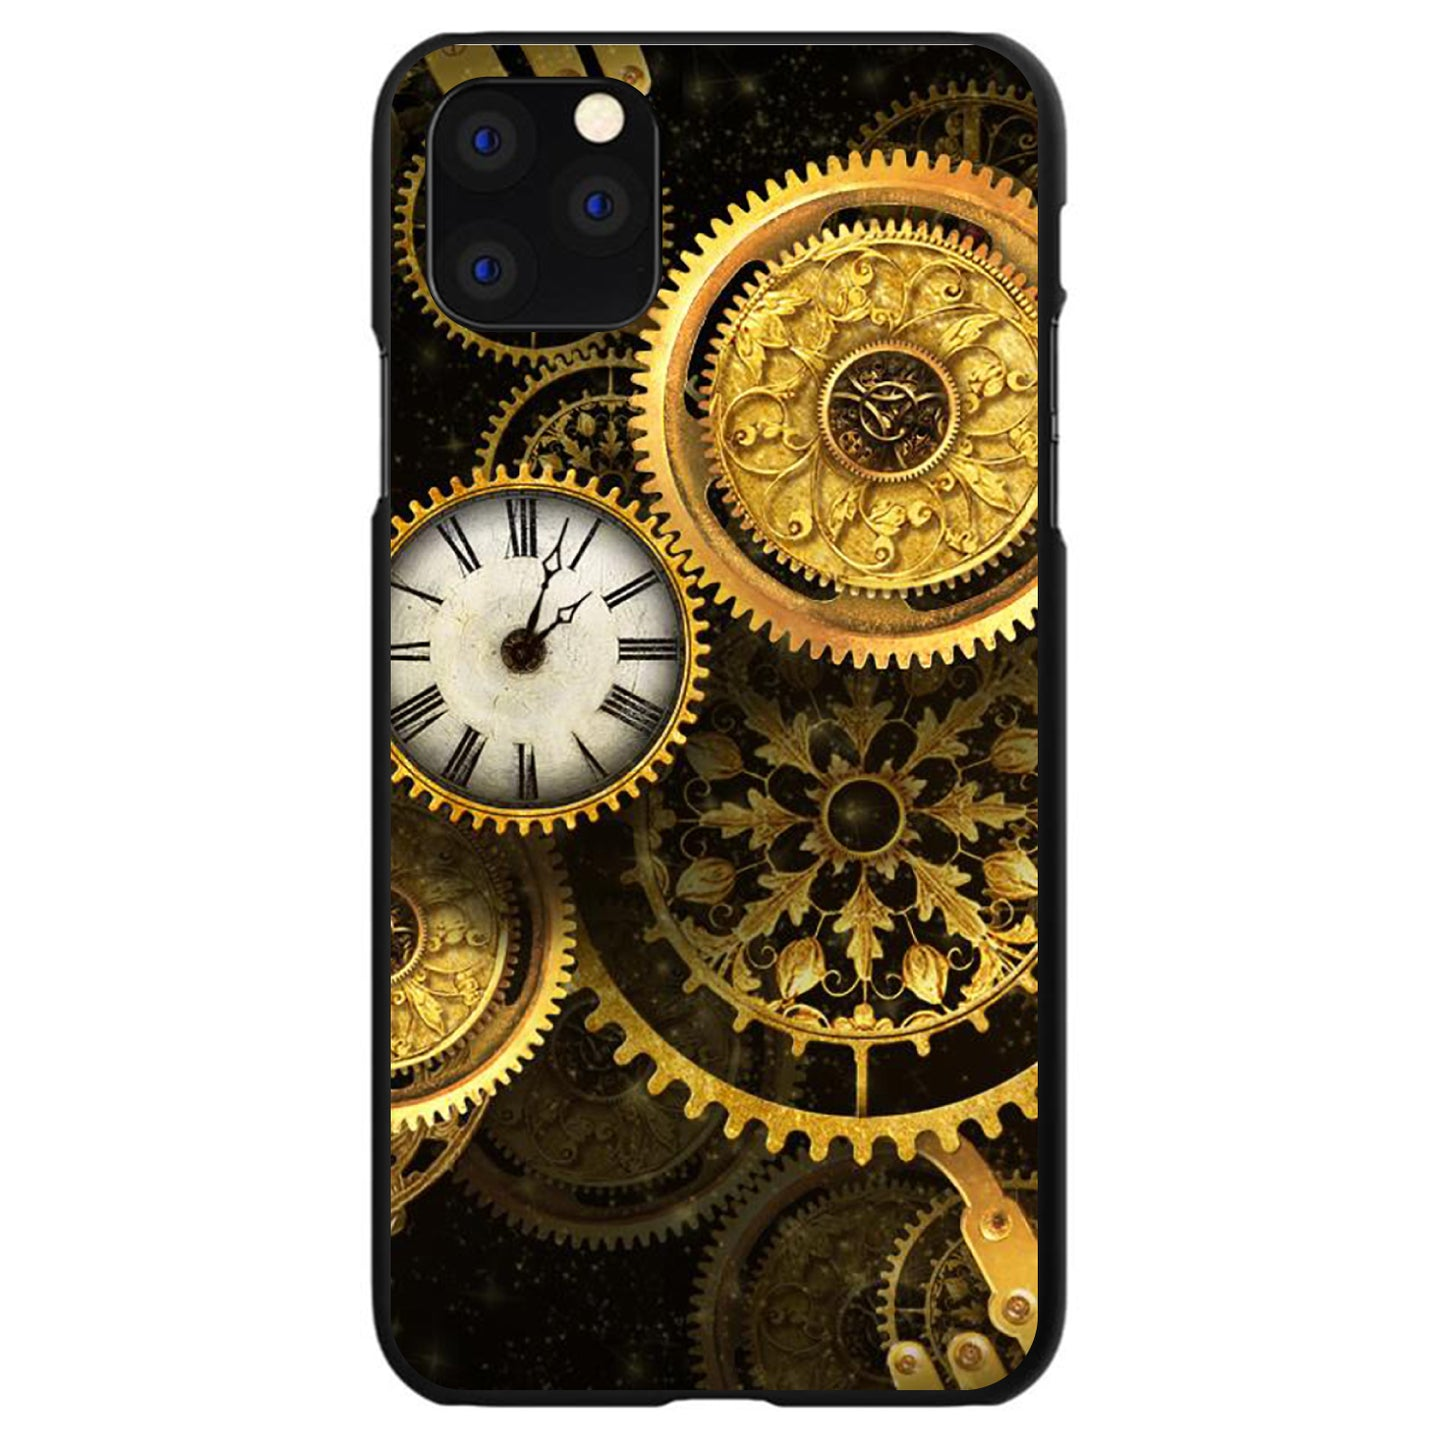 DistinctInk® Hard Plastic Snap-On Case for Apple iPhone - Clocks Clockwork Gold